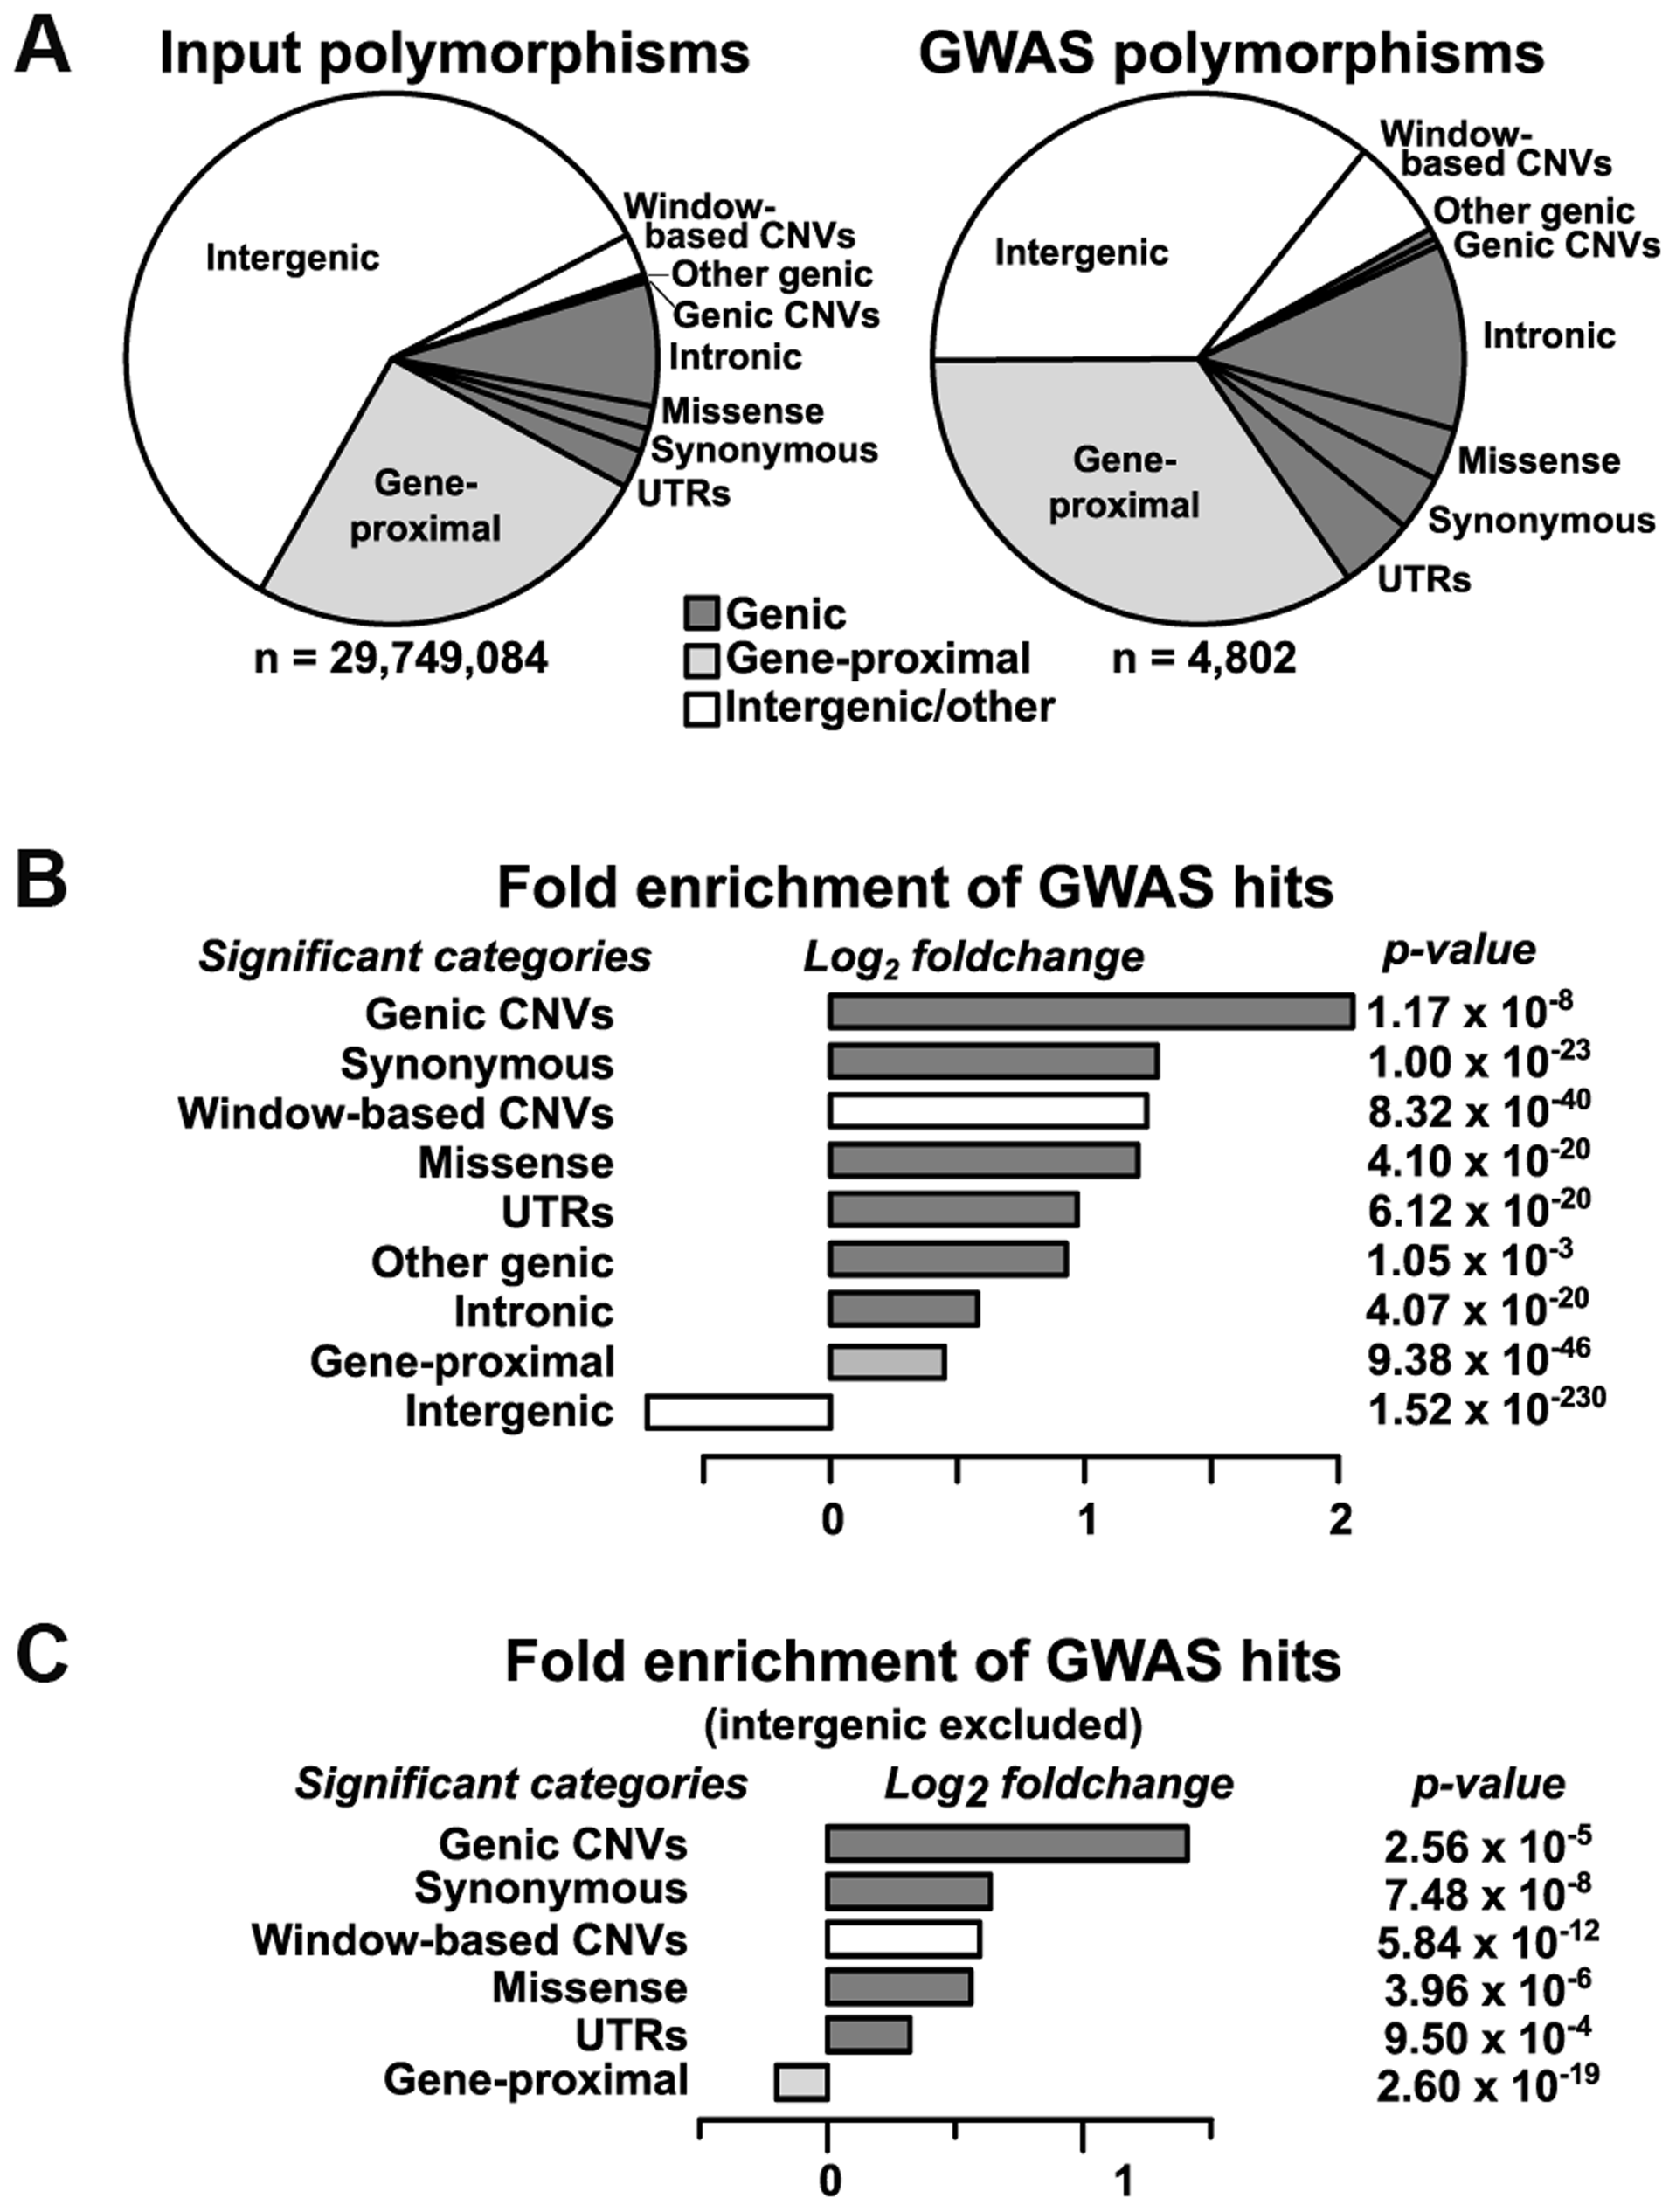 Relative enrichment of polymorphism classes in GWAS hits.